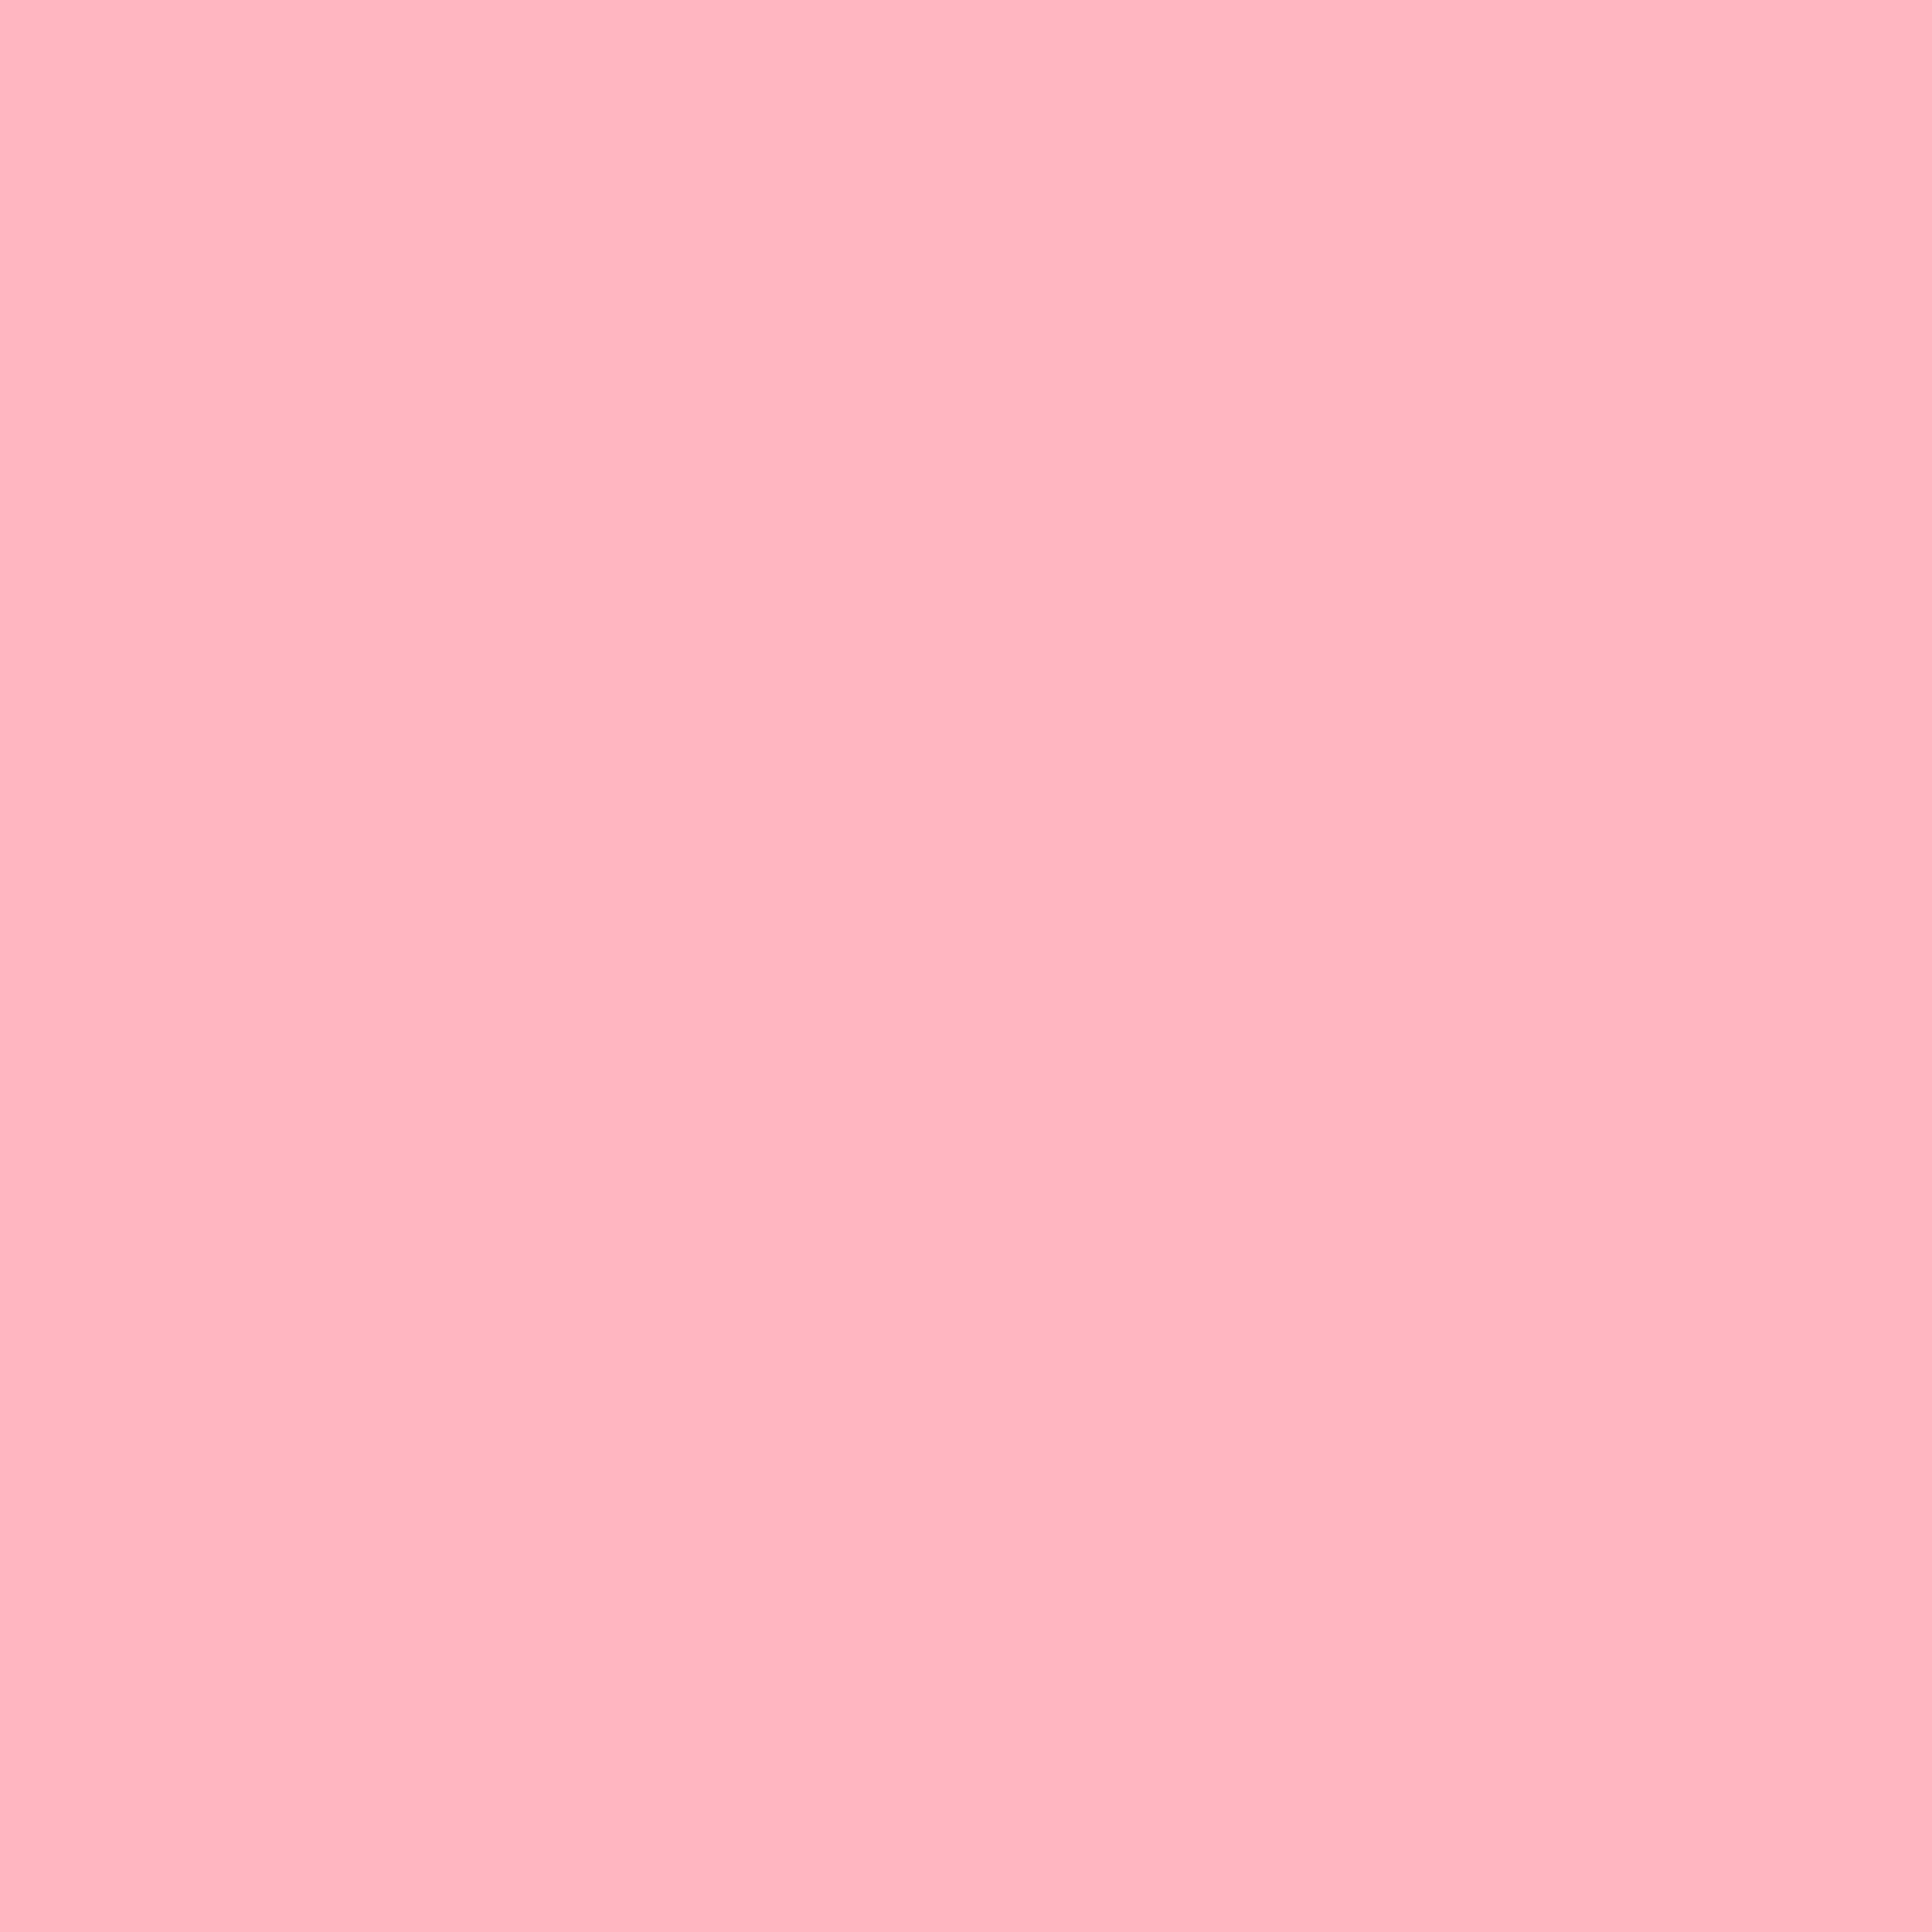 pink background tumblr 183�� download free amazing hd